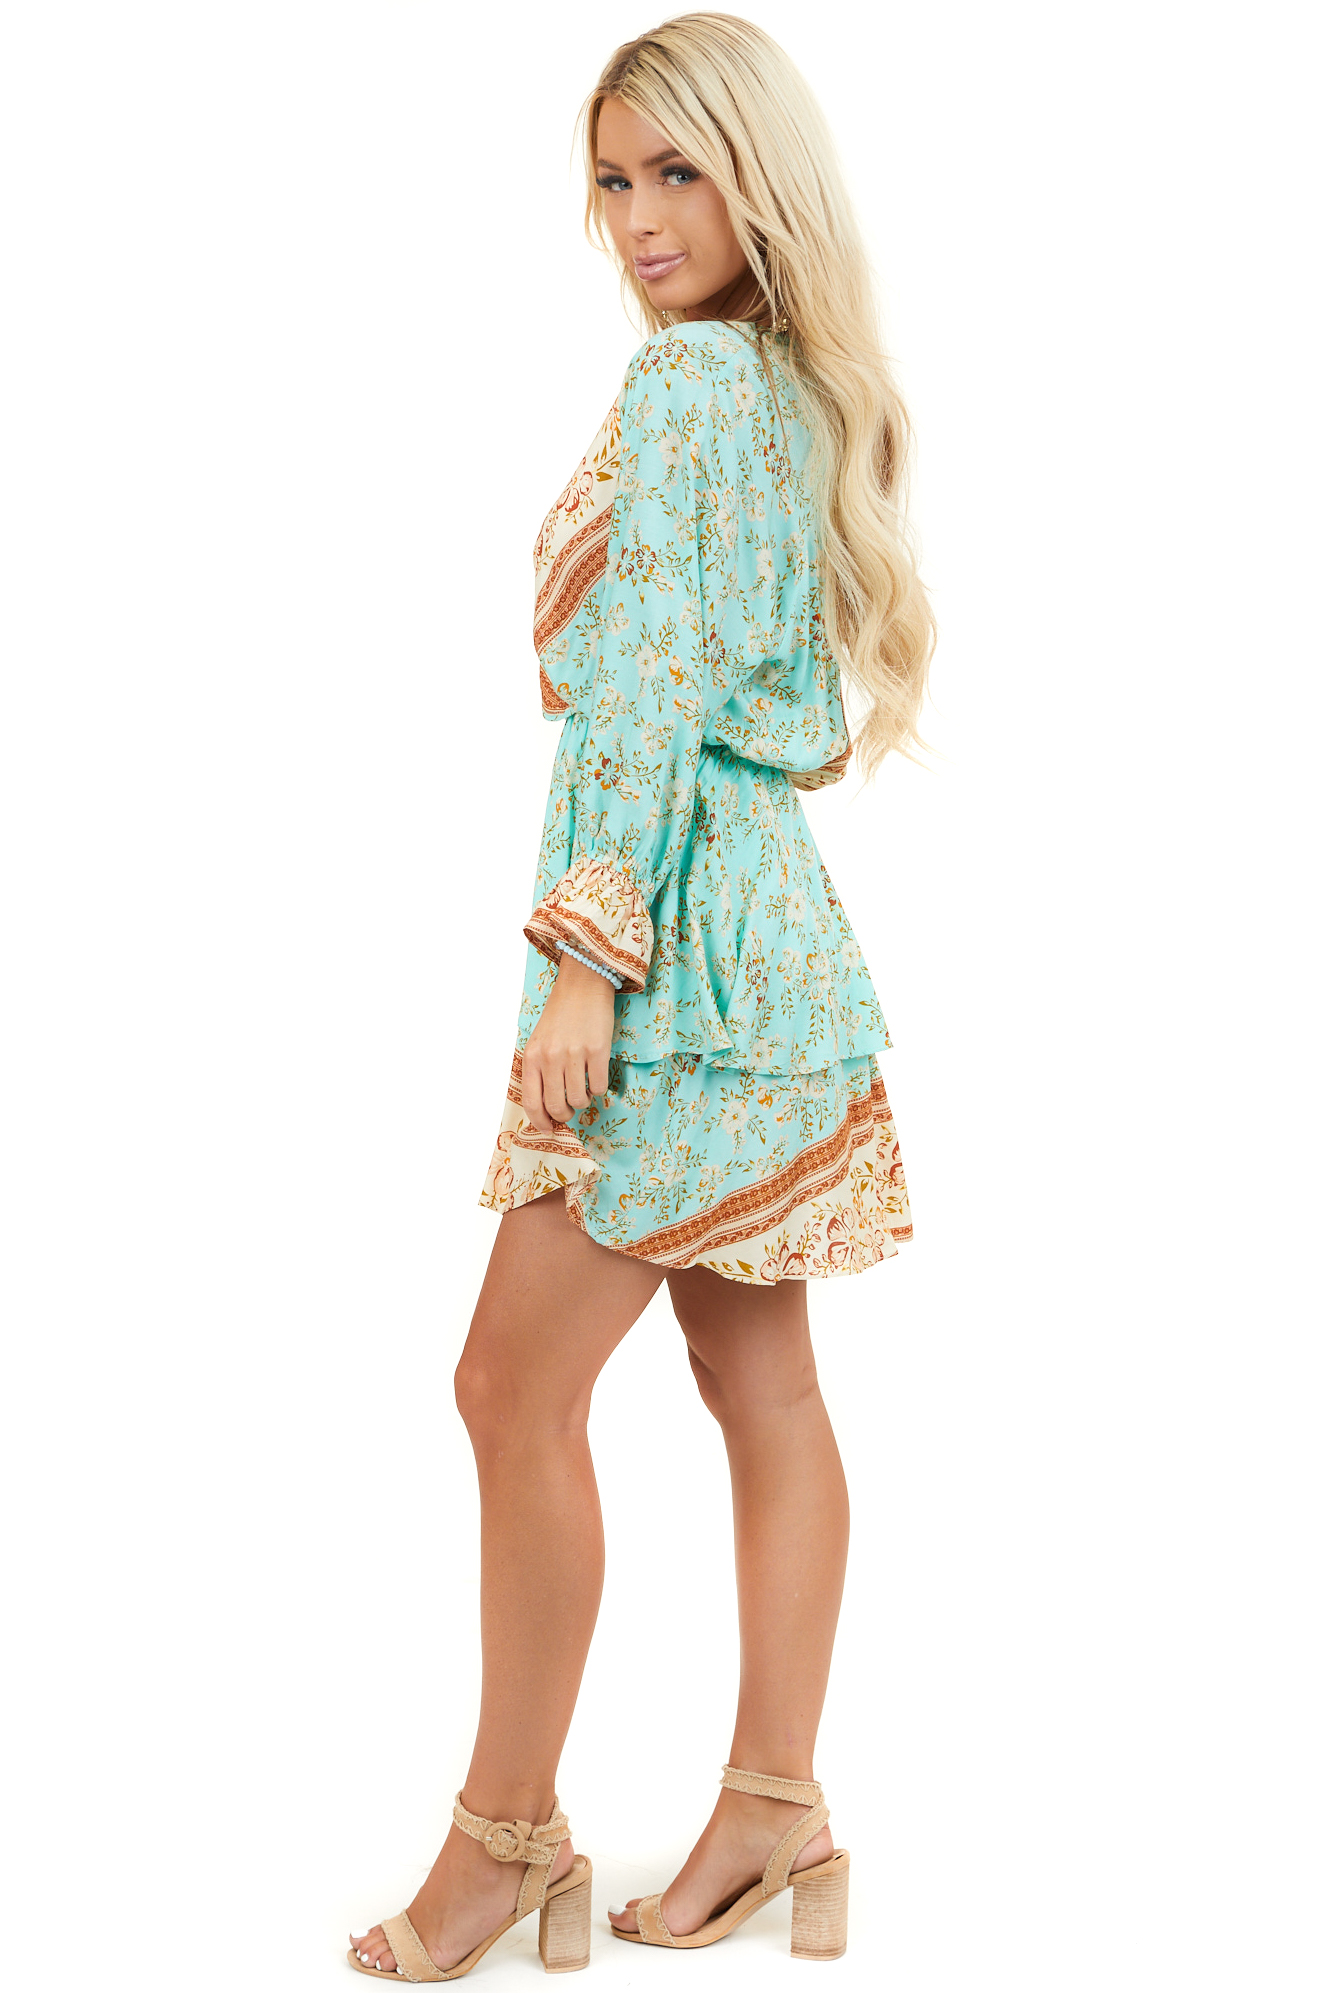 Turquoise Blue Floral Print Mini Dress with Overlay Detail